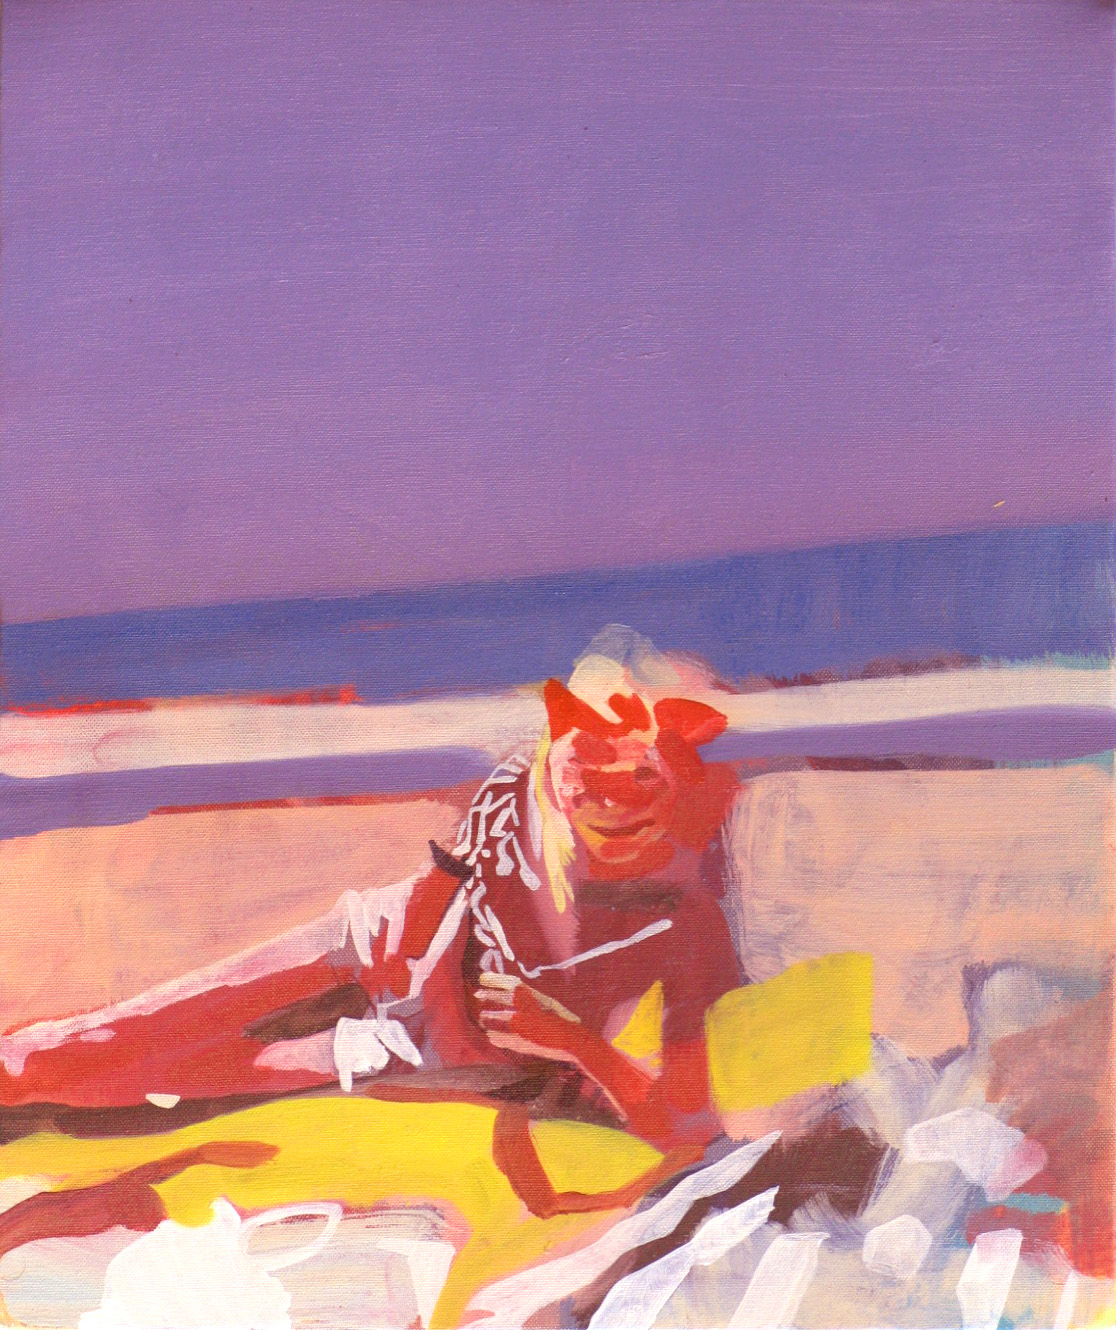 The Girl on the Beach, 2011, oil on canvas, 12 x 10in.